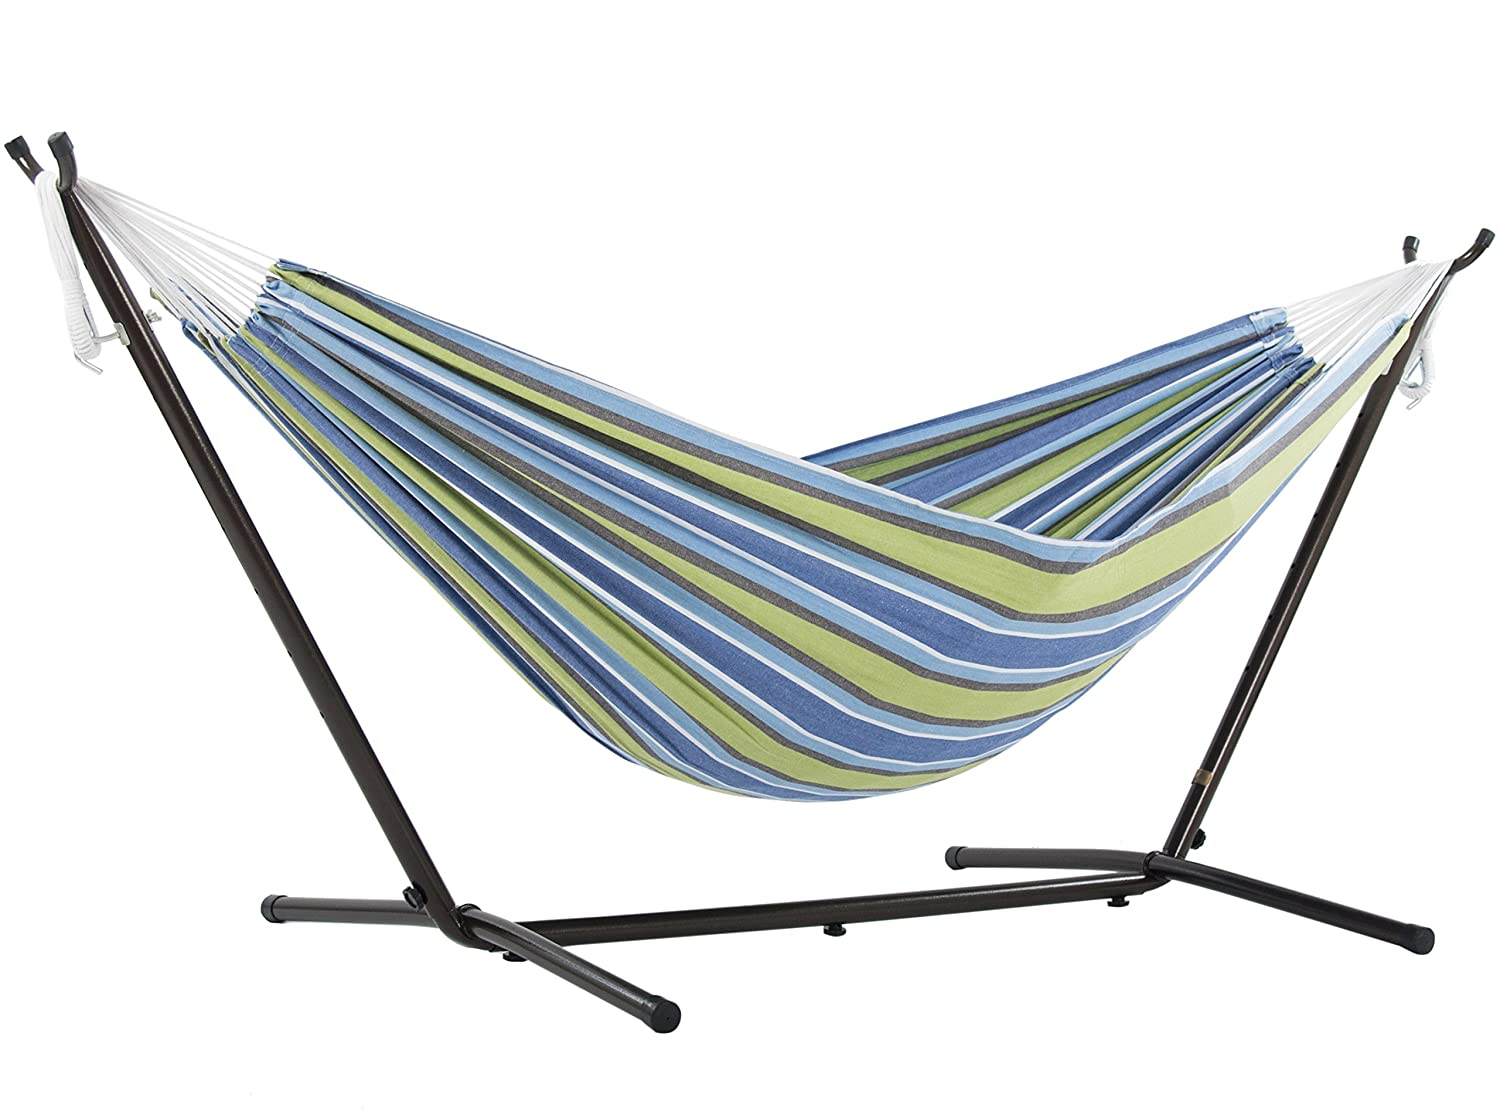 Double Hammock with Space-Saving Steel Standby Vivere